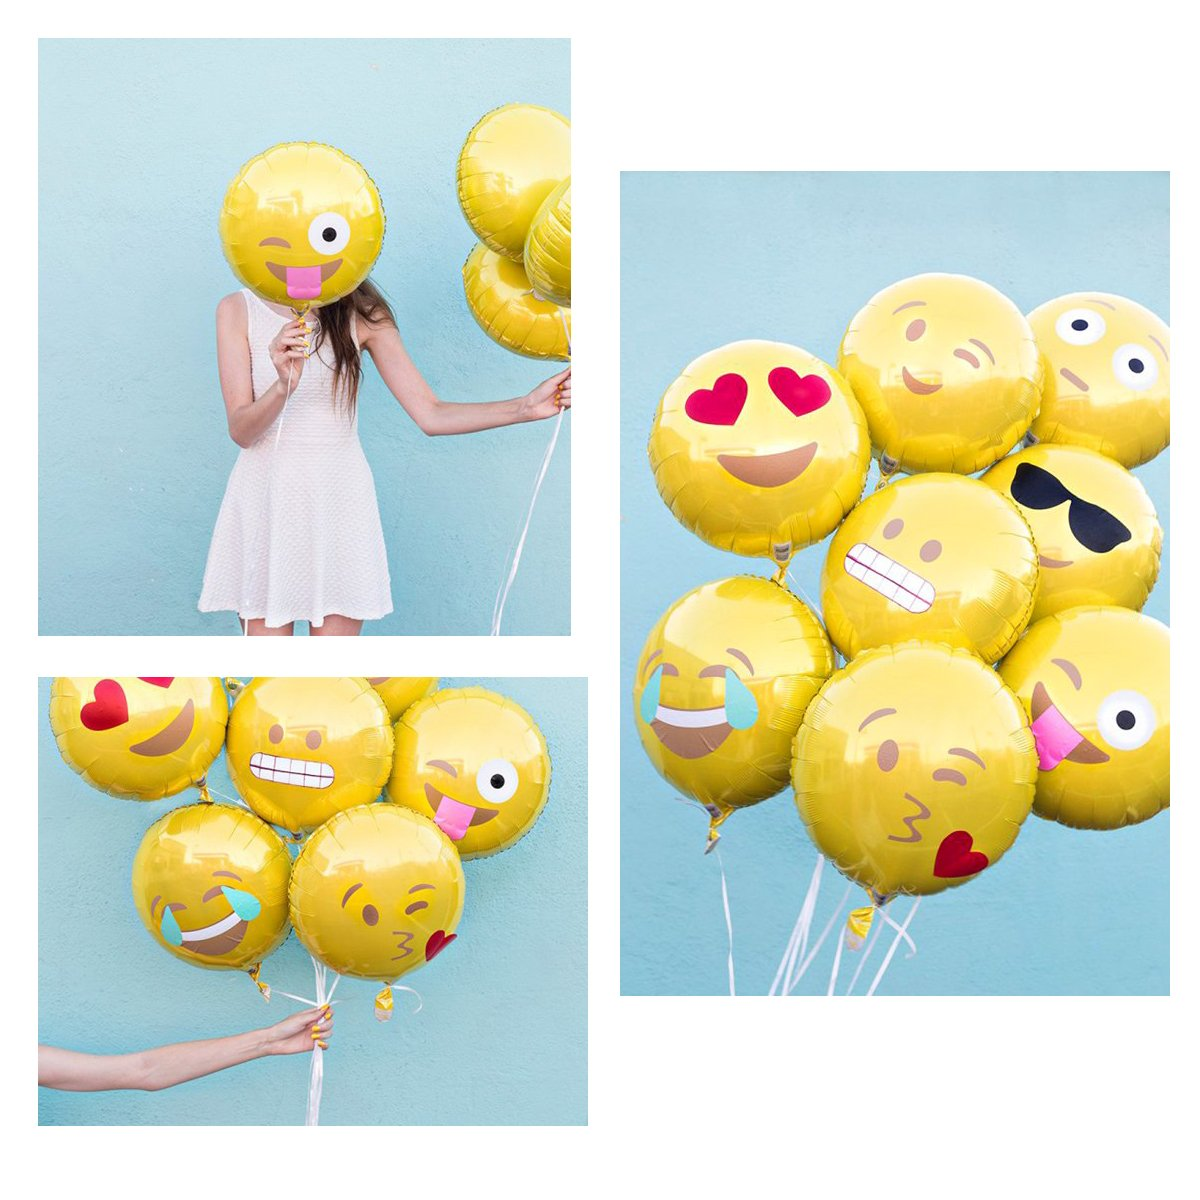 18 Reusable 11 Facial Expression Balloons for Party Birthday or Holiday Decoration BESTOMZ Party Balloons 24pcs 18 Reusable 11 Facial Expression Balloons for Party